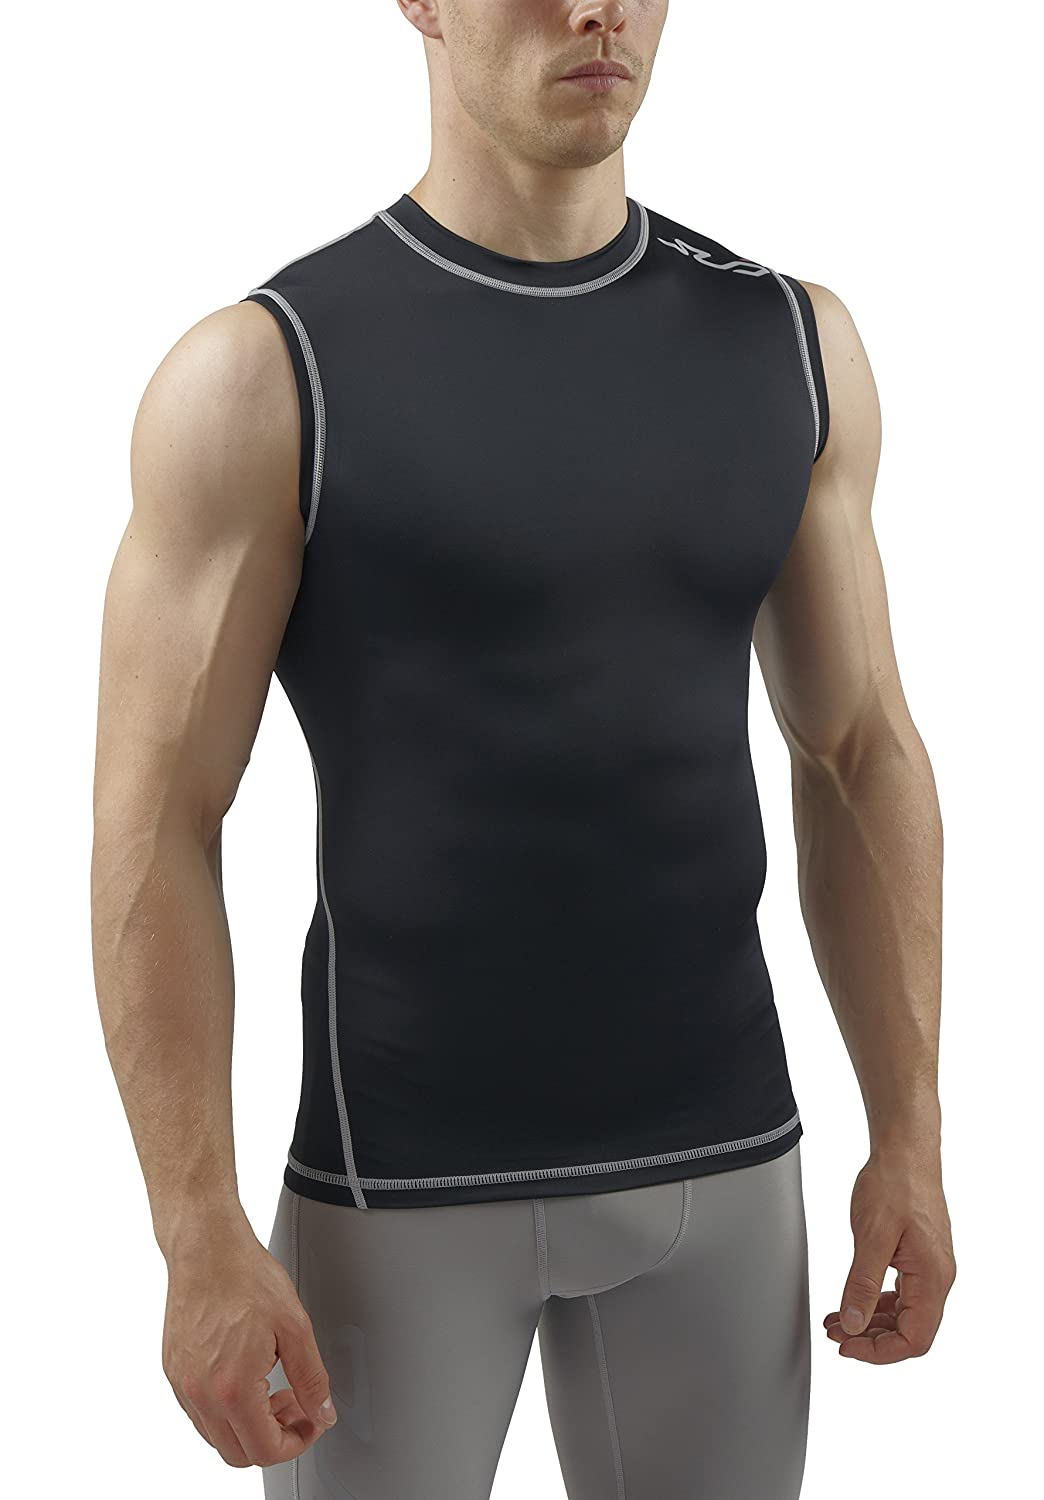 Sub Sports Mens Sleeveless Compression Top Base Layer Tank Top Vest